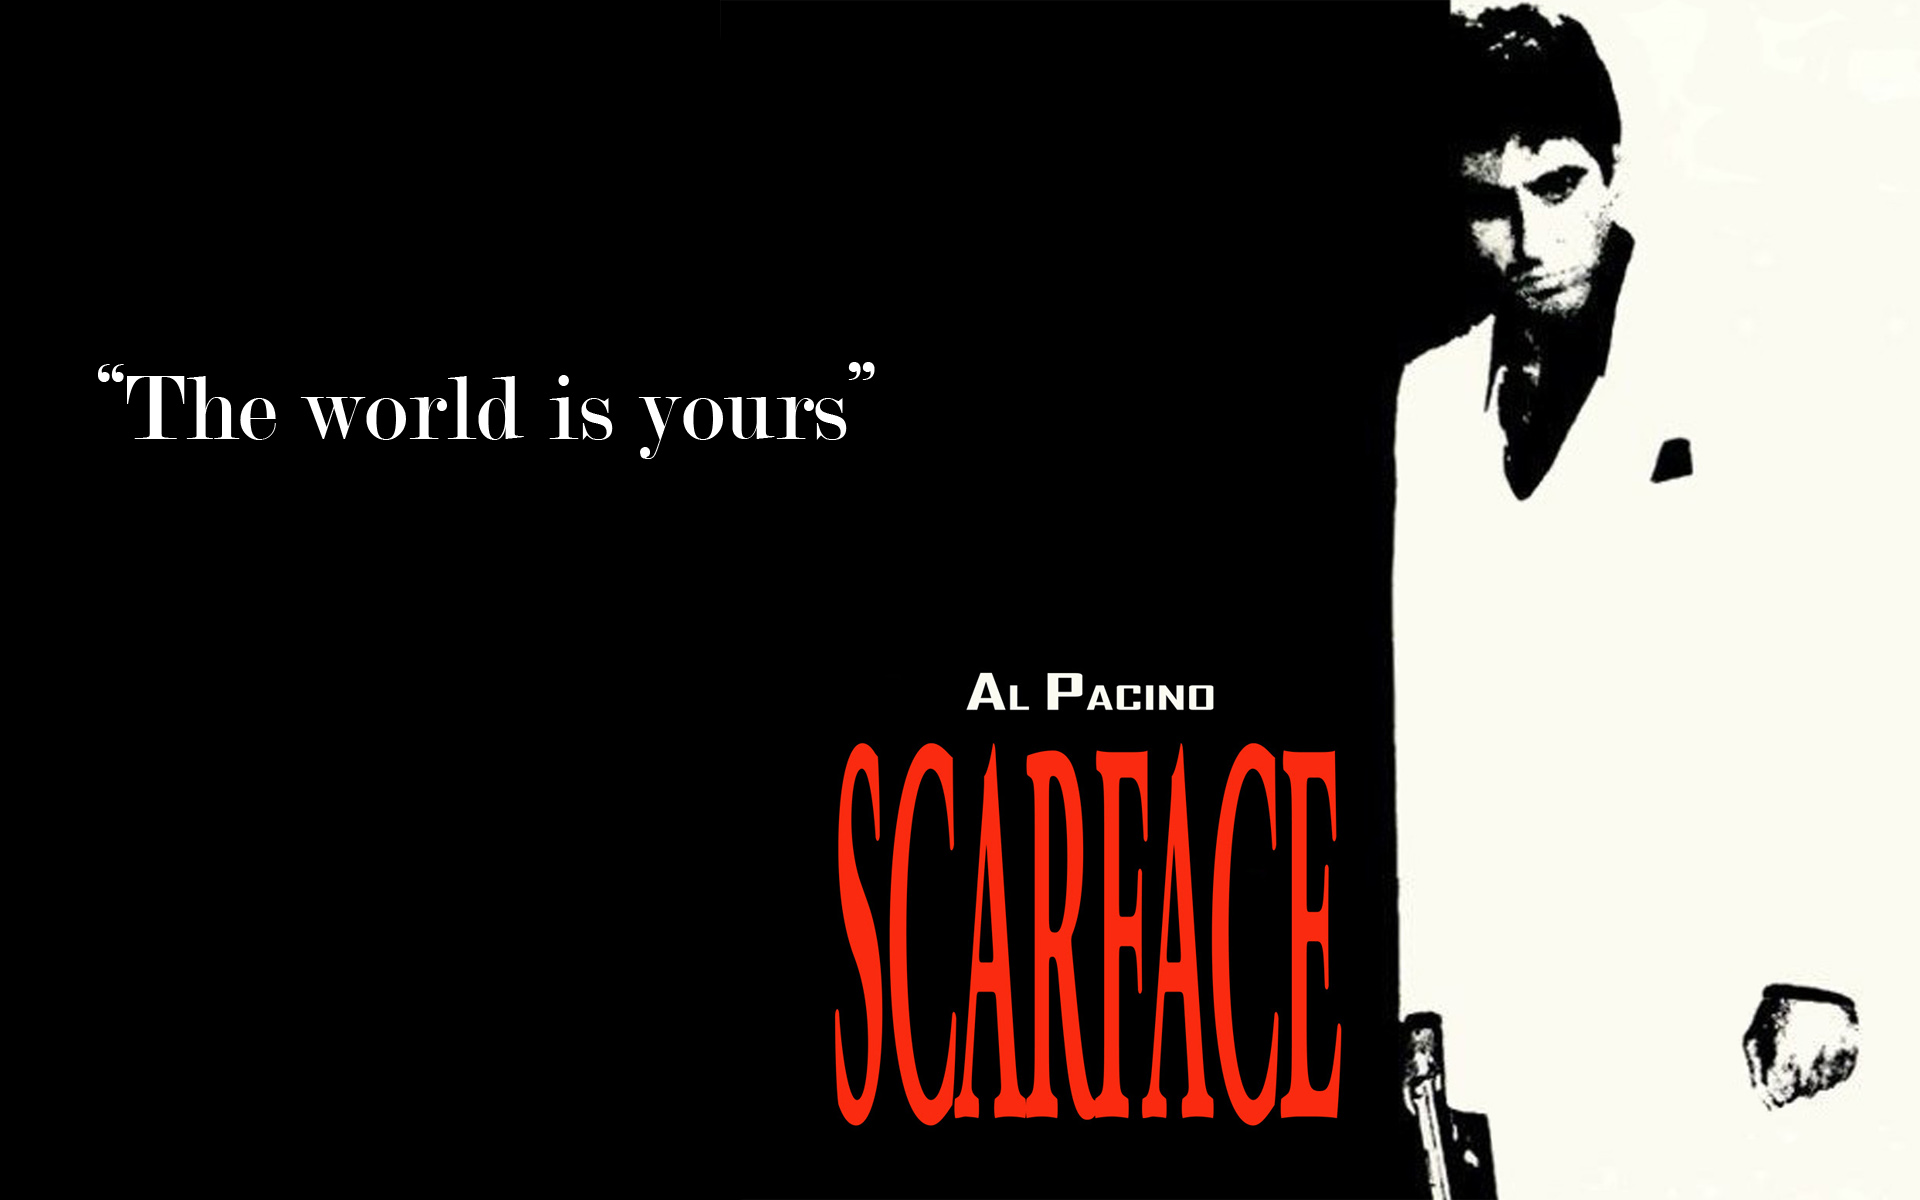 Scarface hd wallpapers wallpapersafari - The world is yours wallpaper ...